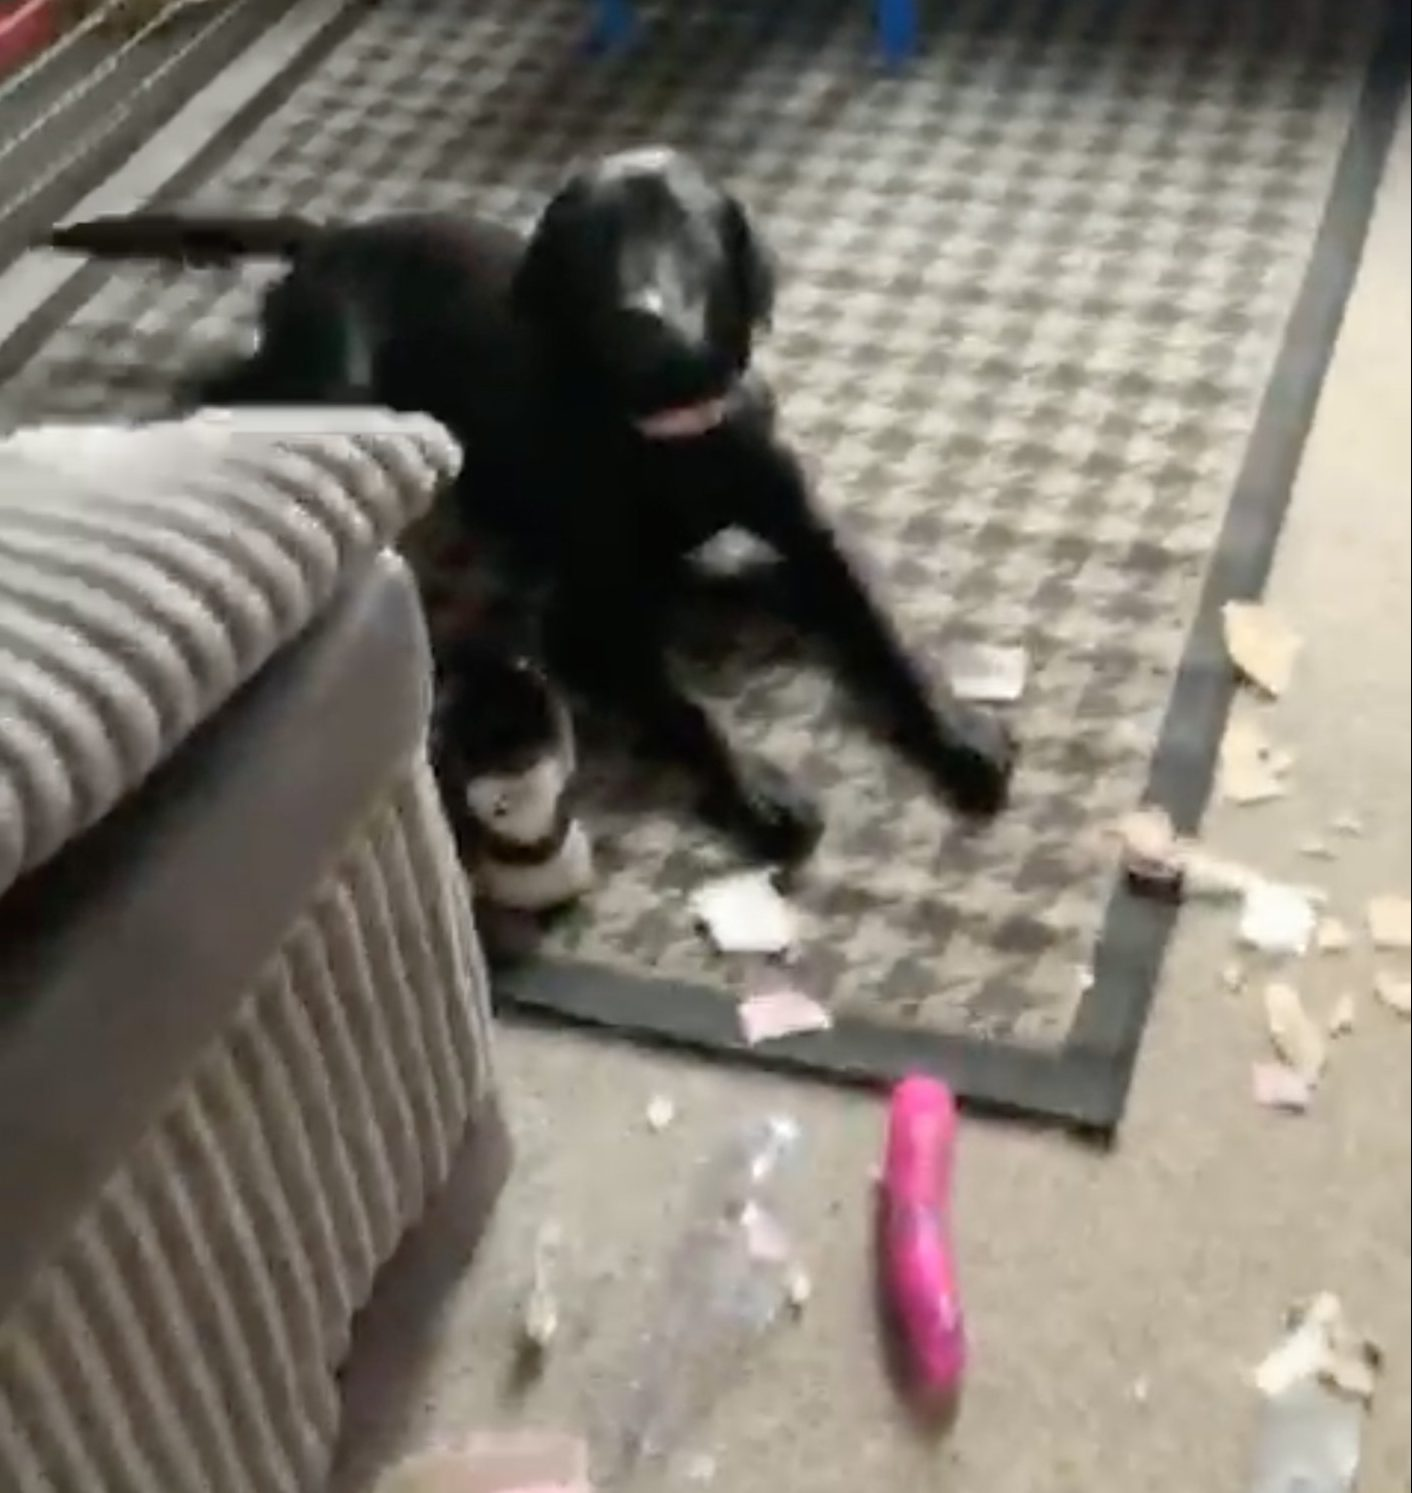 MERCURY PRESS. 15/02/19. Pictured: A screengrab from a video showing the Labrador pup Bonnie next to the parcel she had ripped open. A couple were left red-faced after their dog ripped open a parcel meant for a neighbour and discovered a six-inch SEX TOY. Lee Edwards, 36, and partner Jenna Crozier, 34, took the parcel in for a neighbour and thought it was safe tucked behind the door. But the pair were stunned when they discovered their black Labrador pup Bonnie had ripped the parcel open and had been playing with a big pink dildo. SEE MERCURY COPY